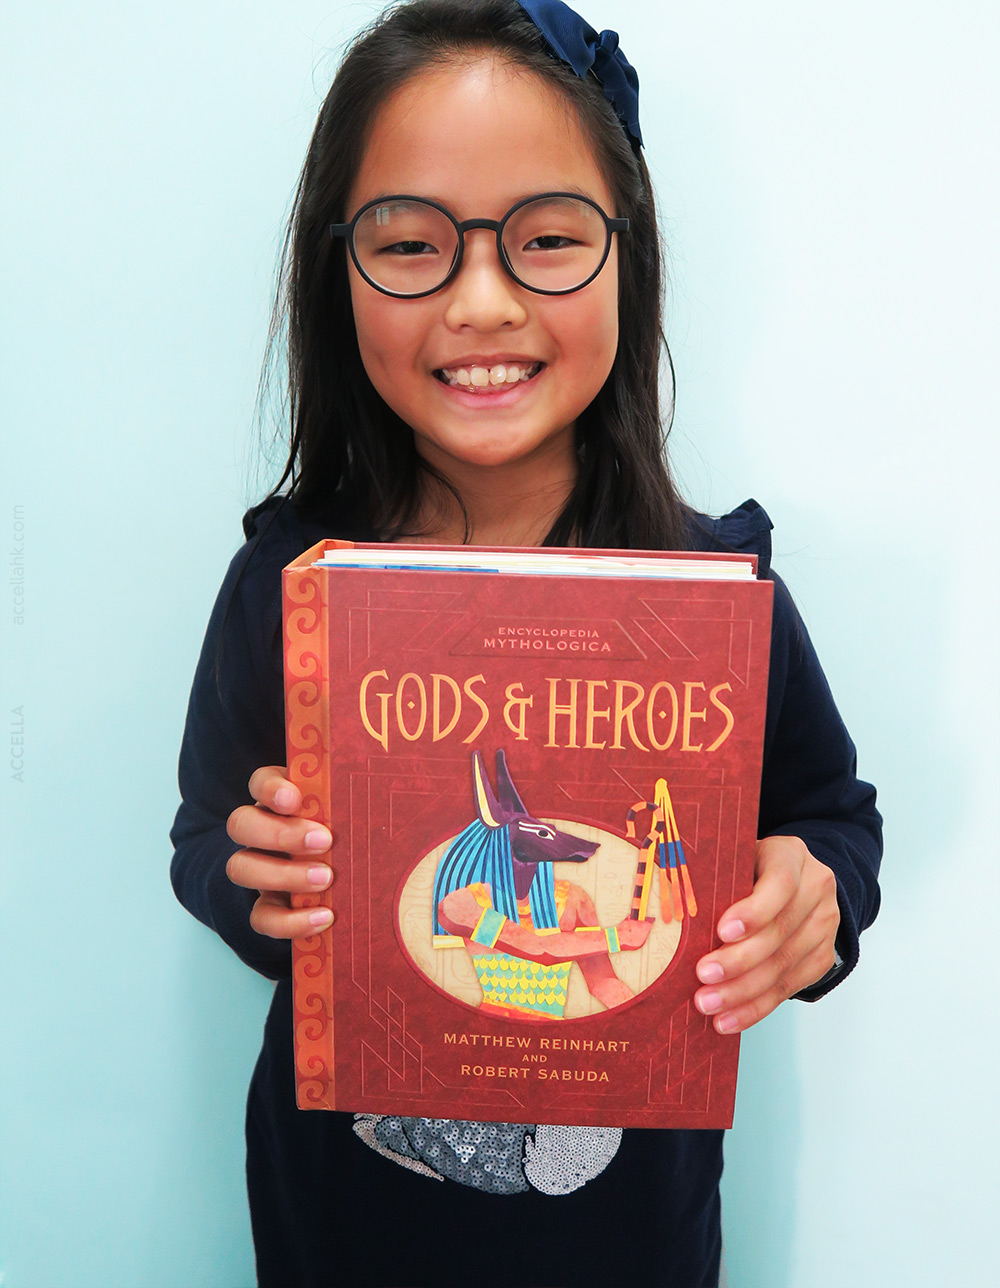 Alice C. scored a copy of a pop-up mythology book, 'Gods & Heroes'!